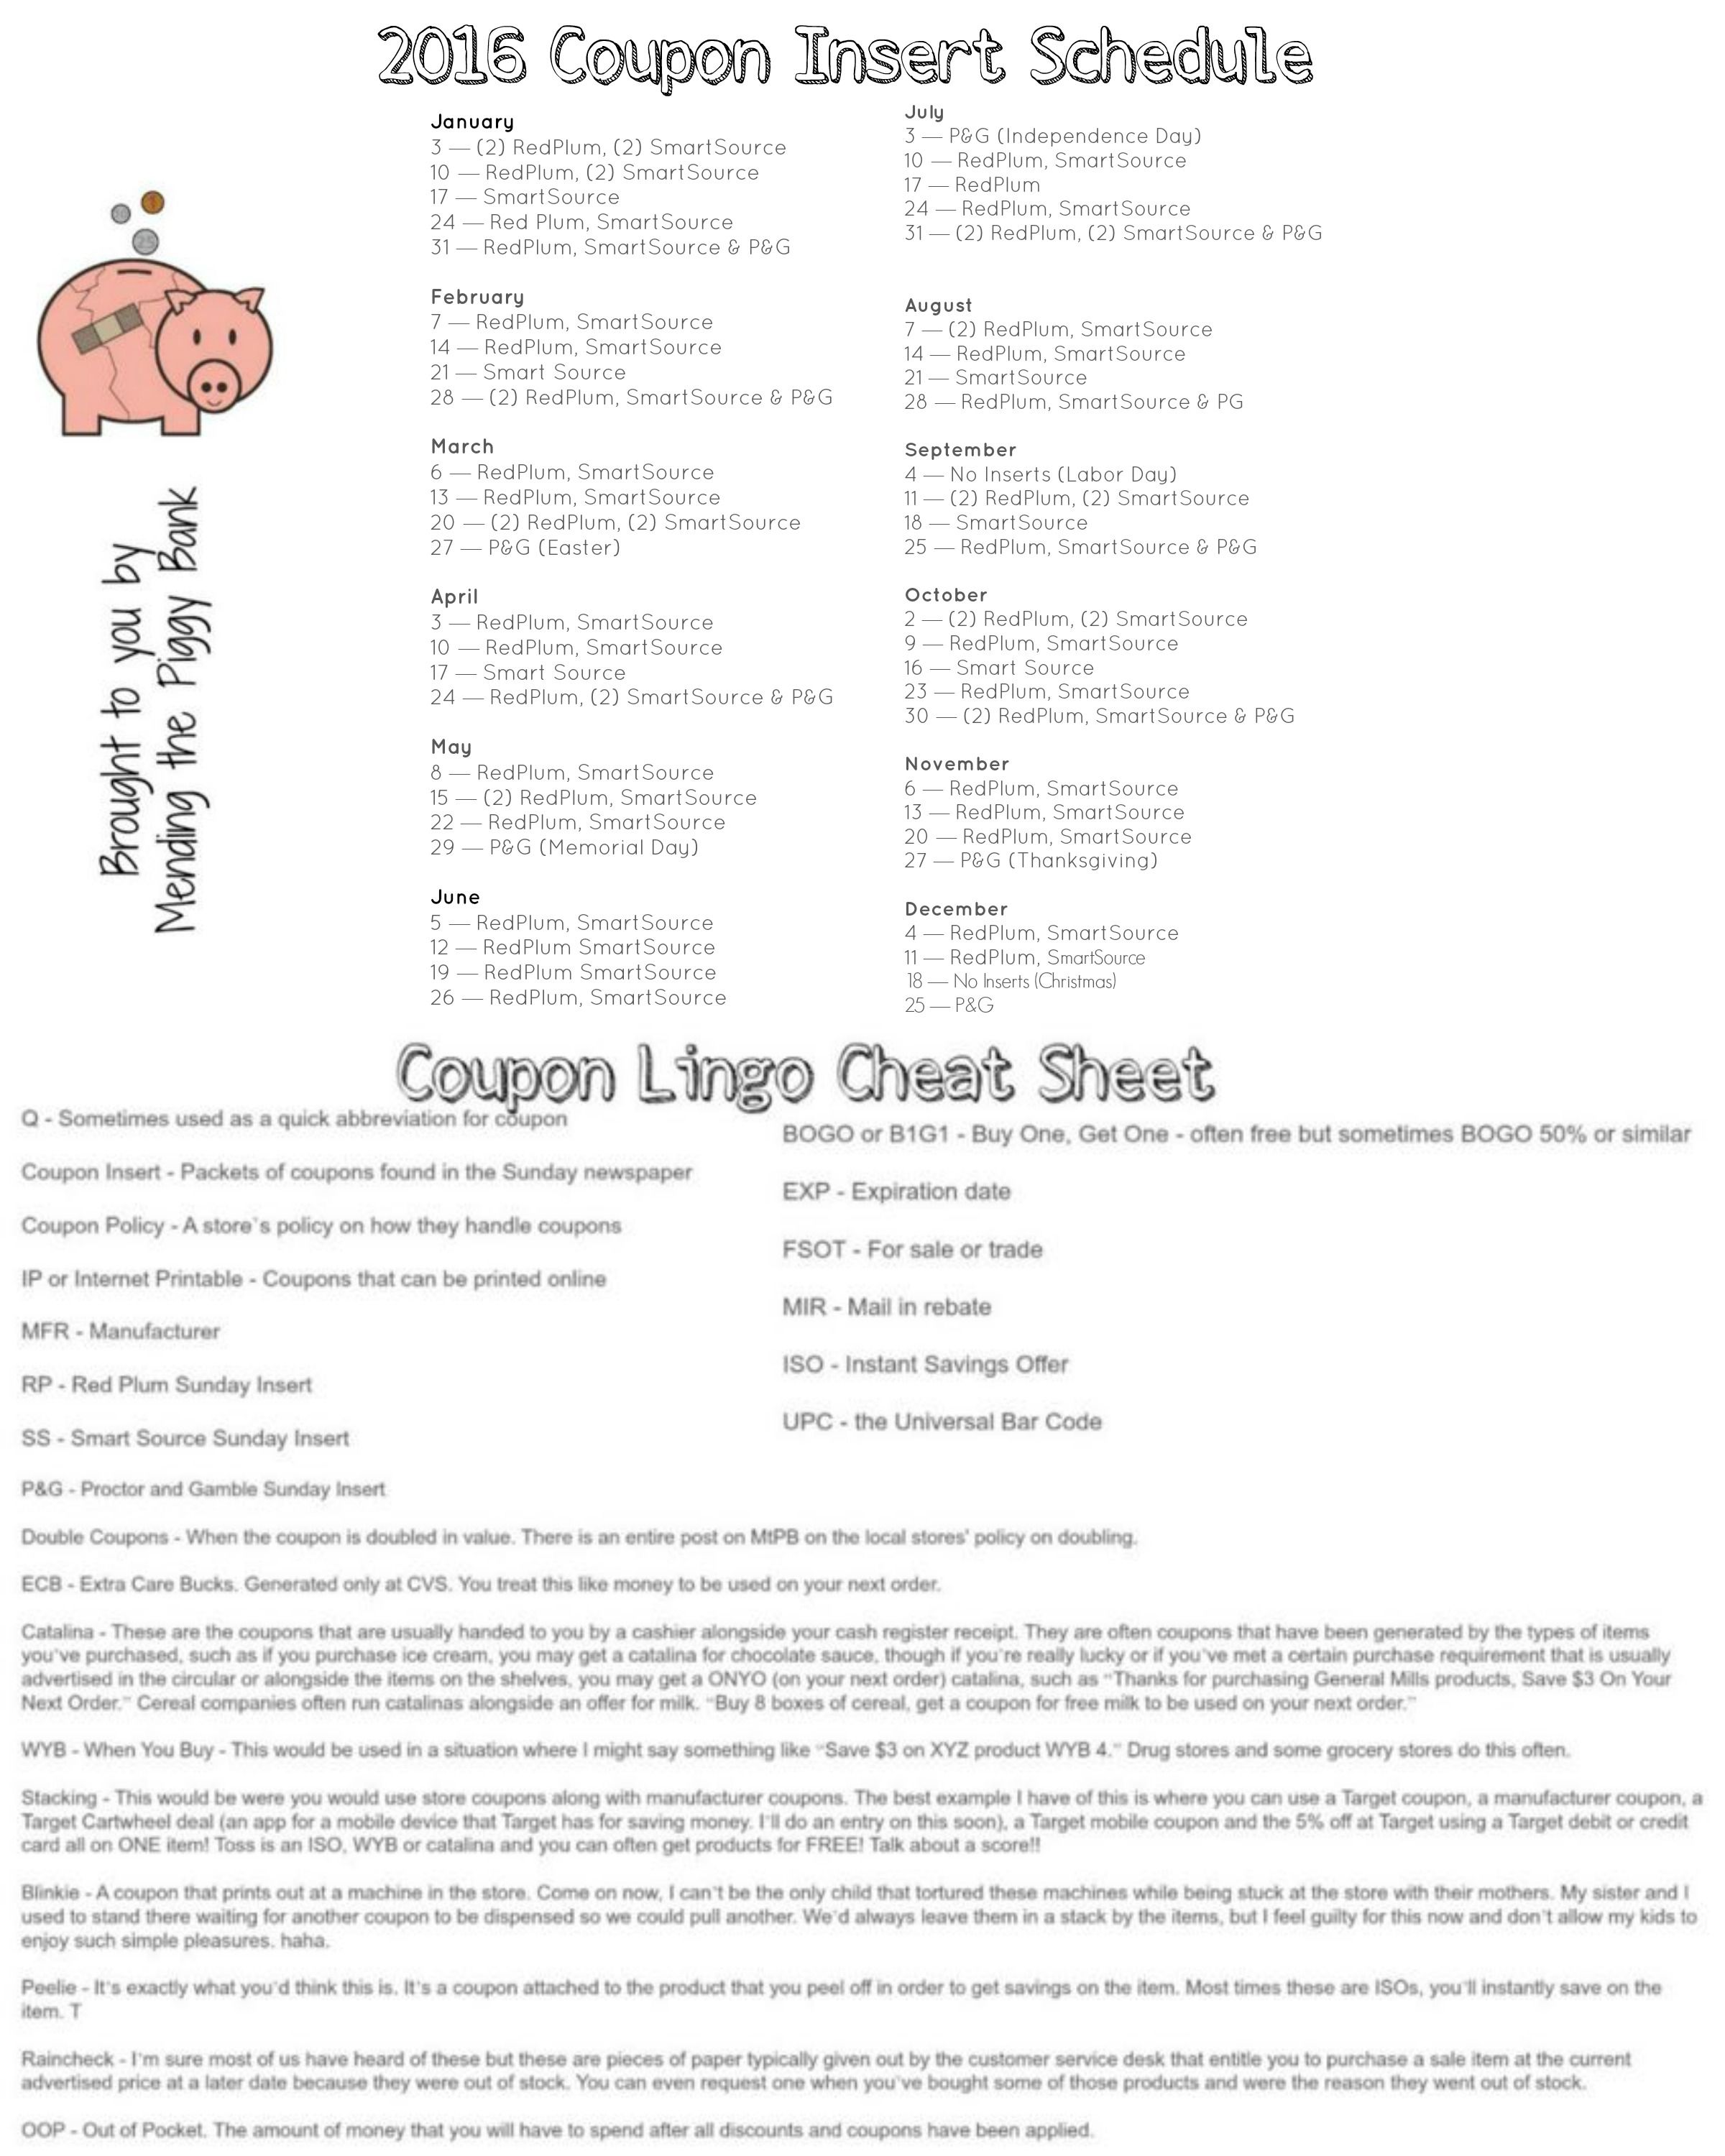 2016 Sunday Coupon Insert Schedule And Coupon Lingo Cheat